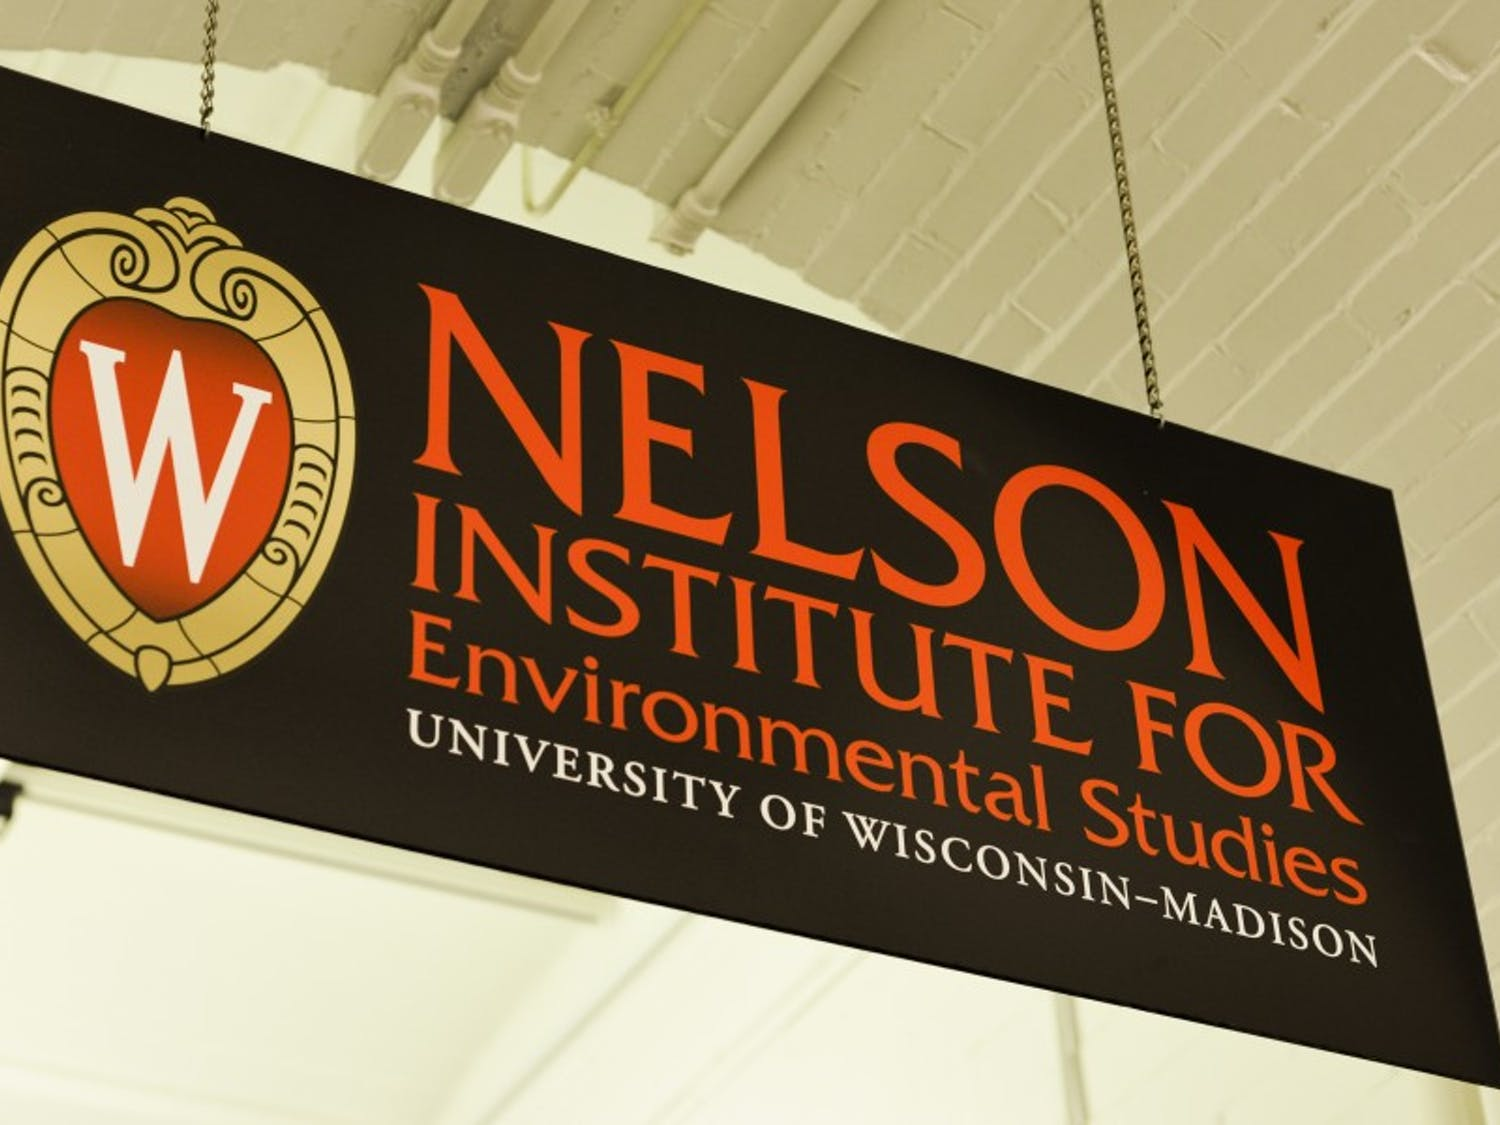 A new partnership between the Menominee Nation and The Nelson Institute may help advance the tribe's current conservation goals while also exposing UW-Madison environmental studies students to Menominee land management traditions.